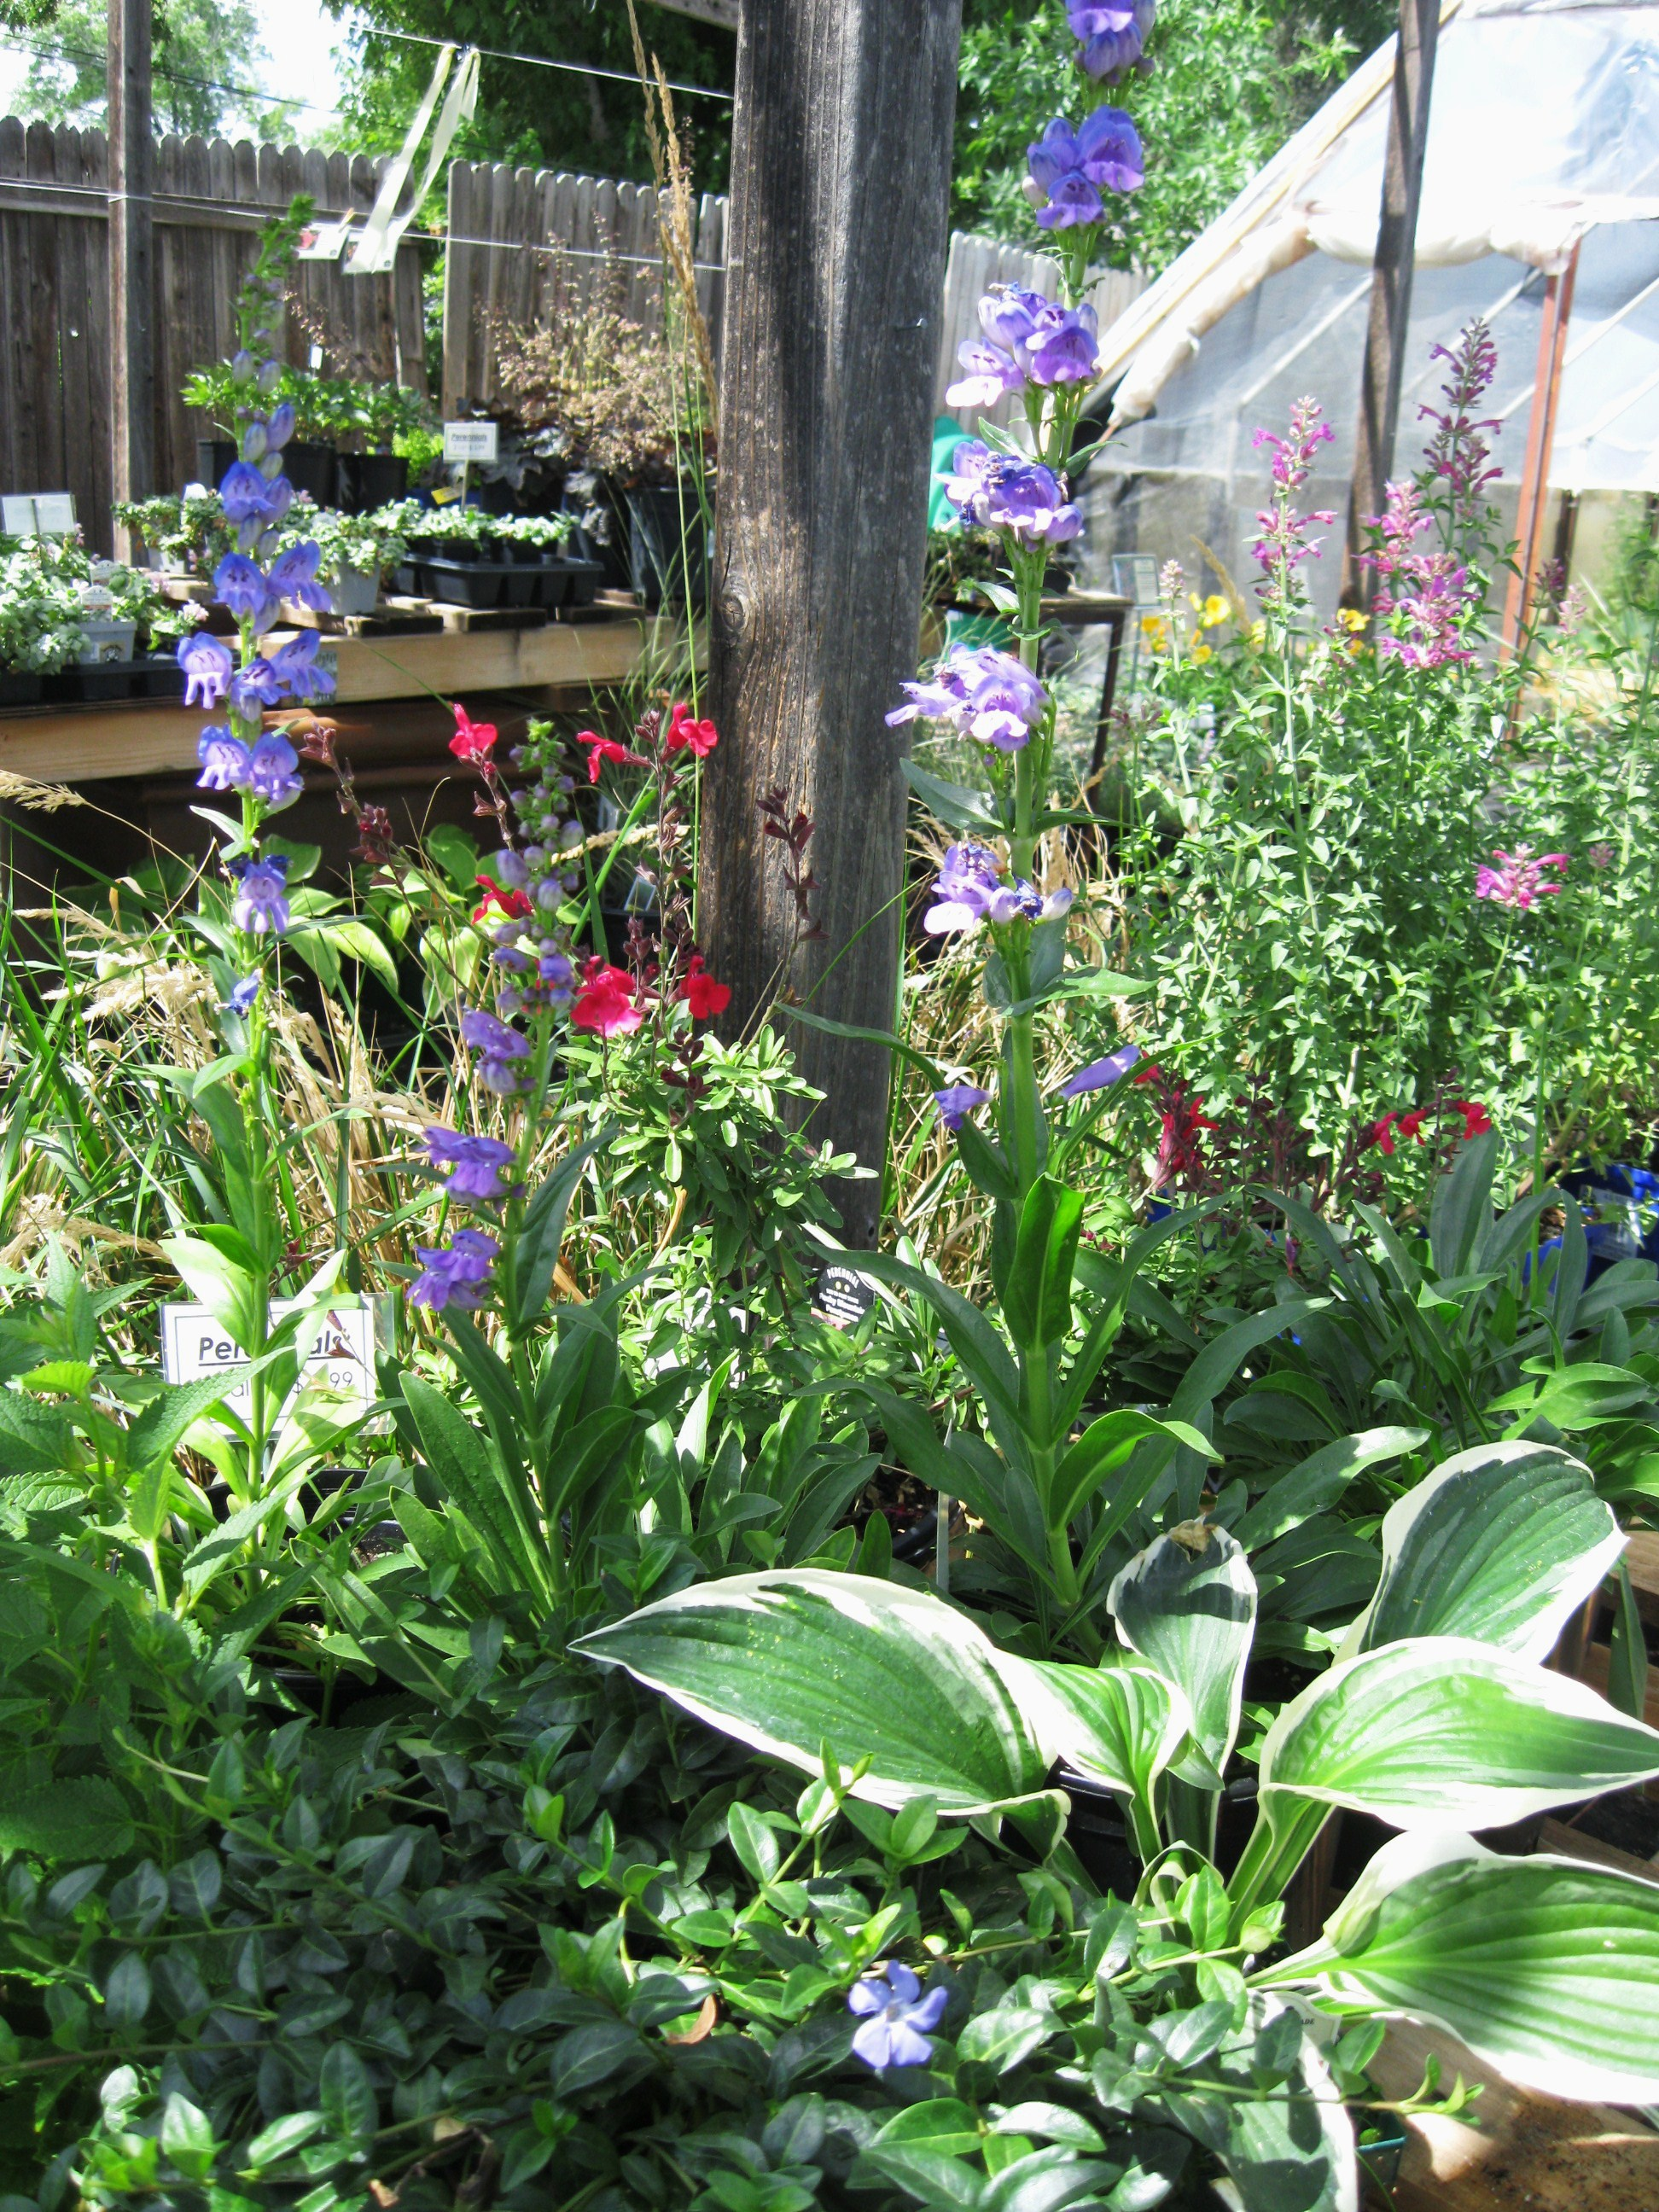 Perennials hardy plants for your garden sunset greenhouse for Hardy plants for the garden